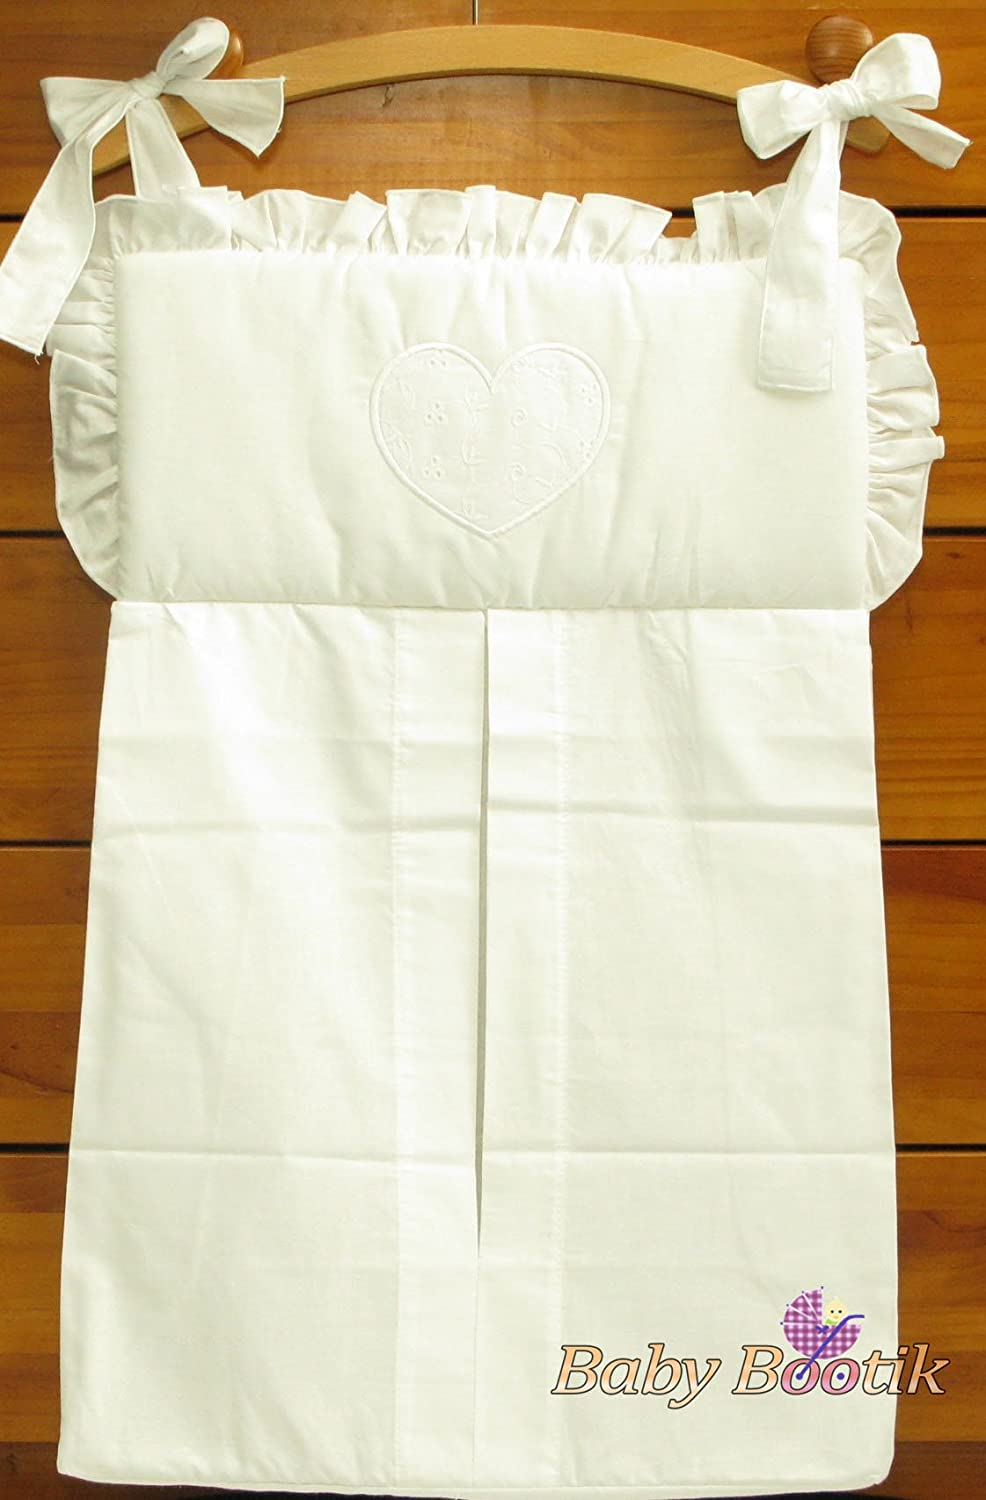 NAPPY STACKER/DIAPER BAG MATCH BABY NURSERY COT/COT BED BEDDING - HEARTS WHITE Babycomfort